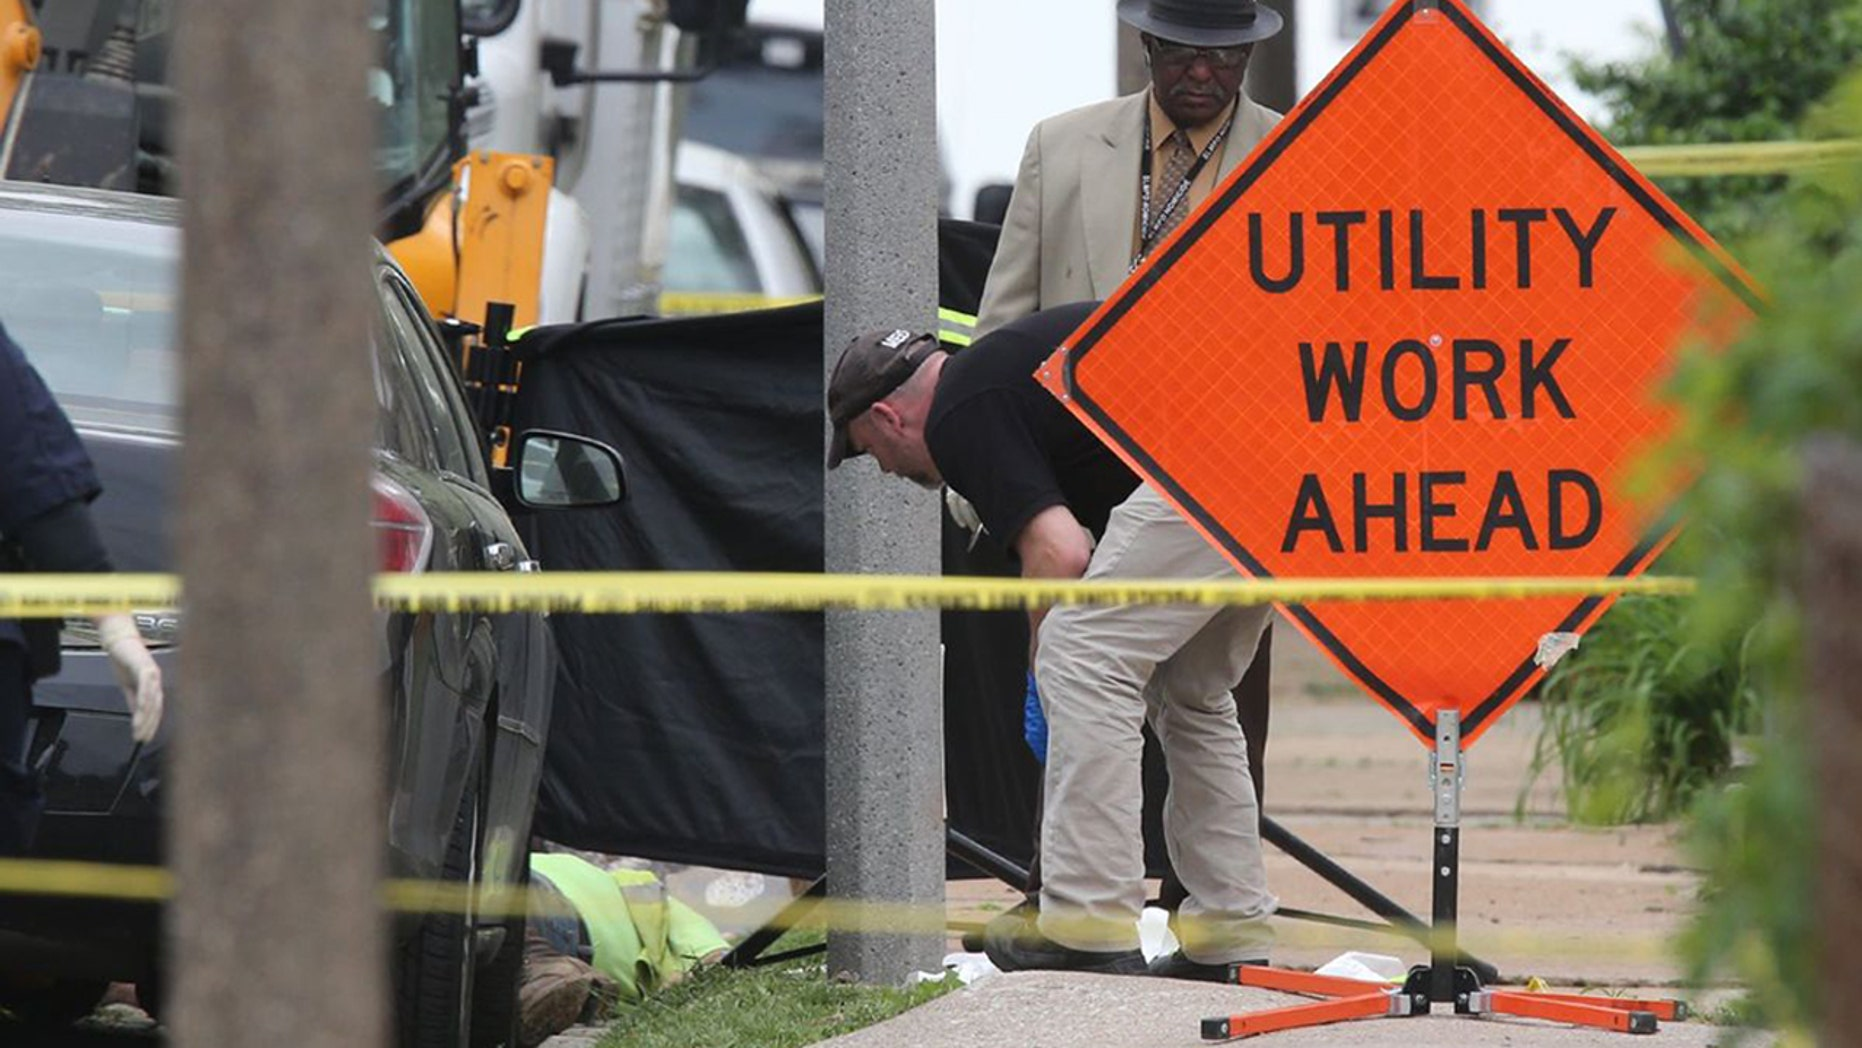 Police investigate a triple shooting in which two Laclede Gas workers were shot and killed in St. Louis on Thursday, April 20, 2017. Police say the shooter also shot and killed himself.